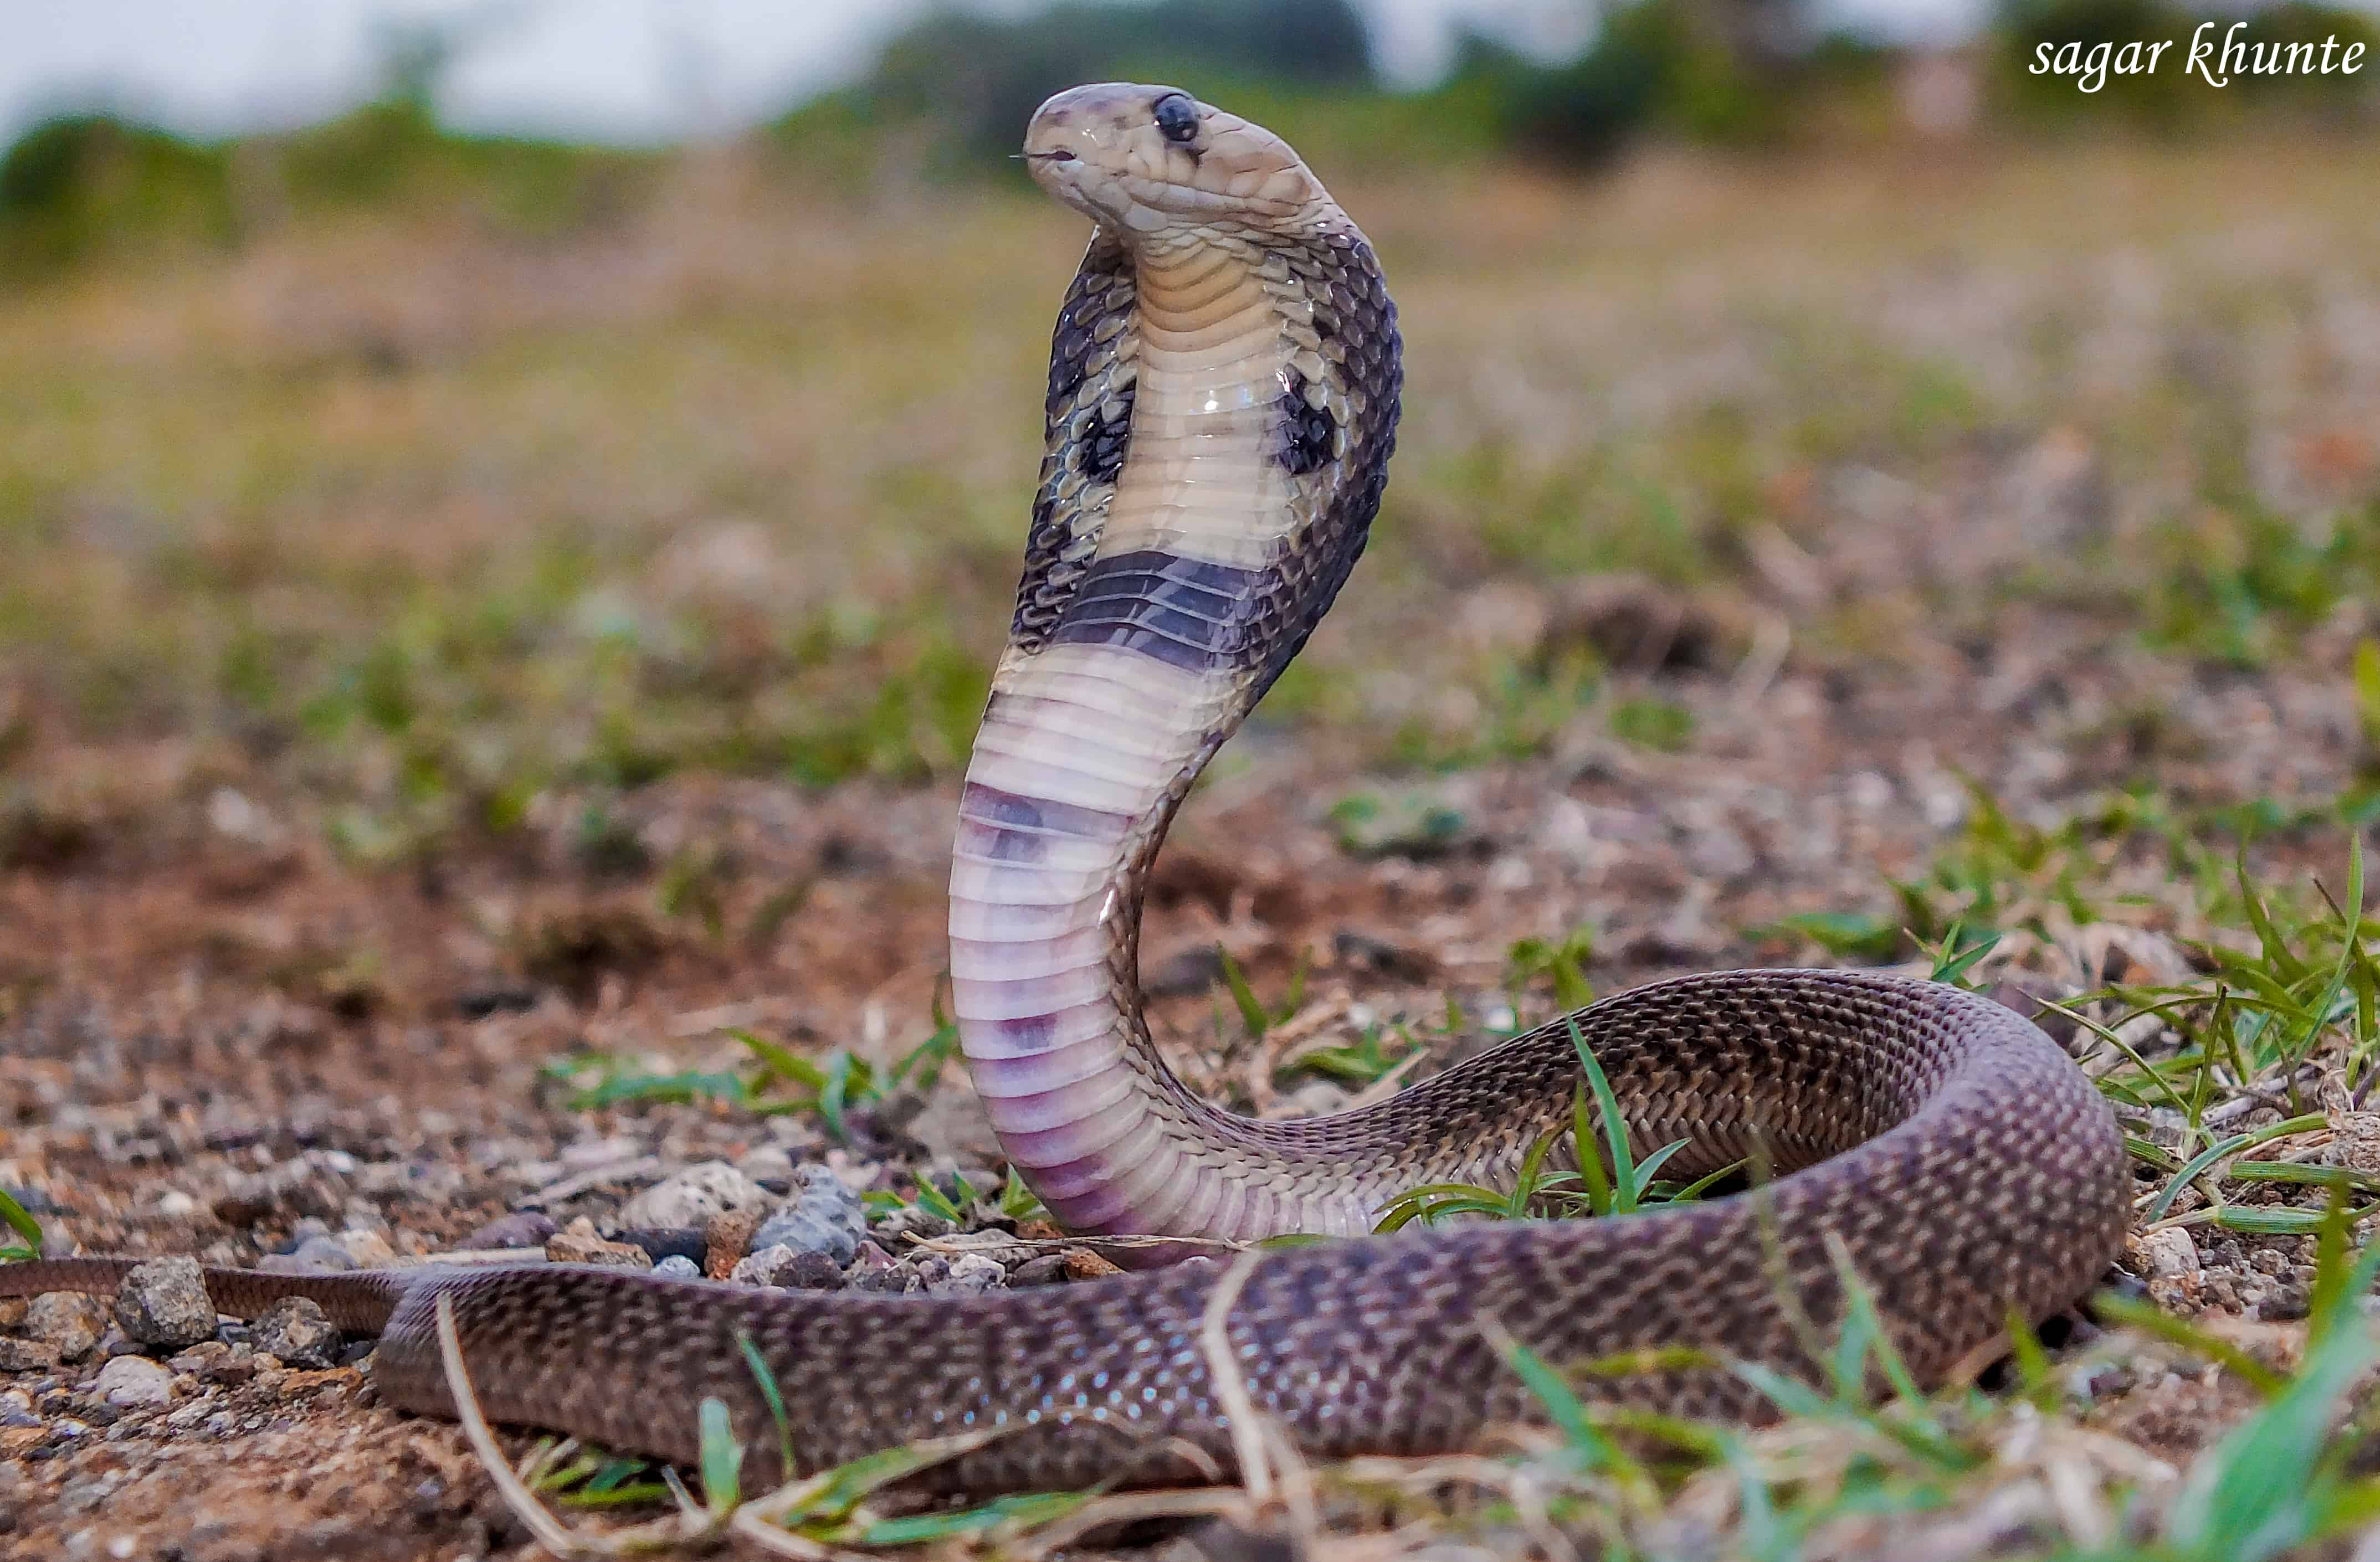 What does King Cobra eat?